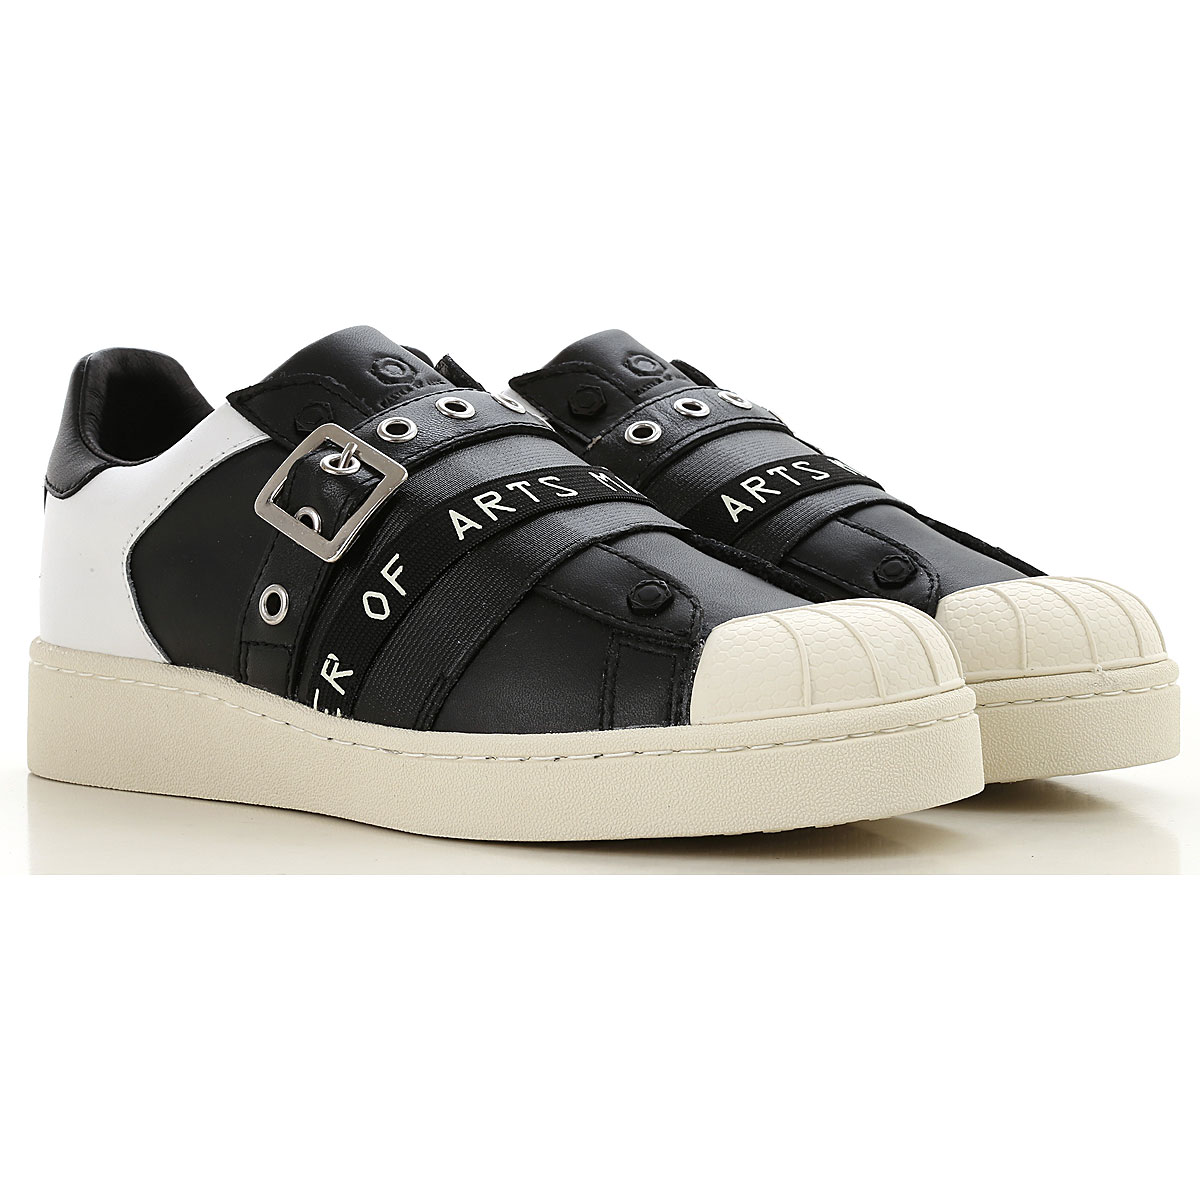 Image of Moa Master of Arts Slip on Sneakers for Women, Black, Textile, 2017, 10 6 7 8 9